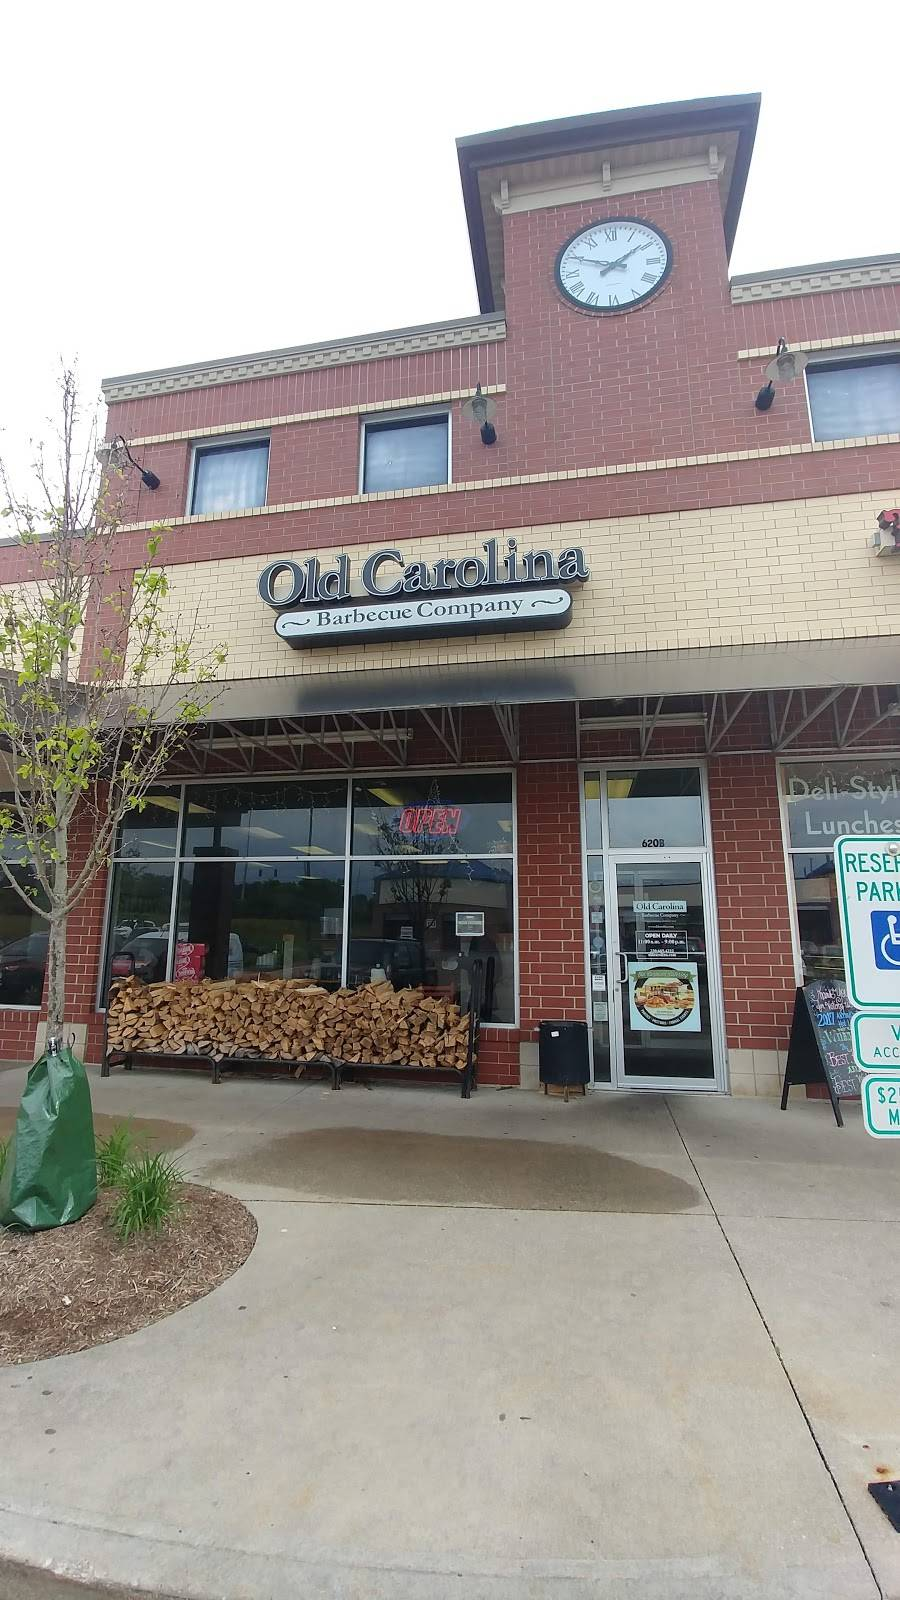 Old Carolina Barbecue Company | restaurant | 620 Ridgewood Crossing Rd, Fairlawn, OH 44333, USA | 3306654222 OR +1 330-665-4222